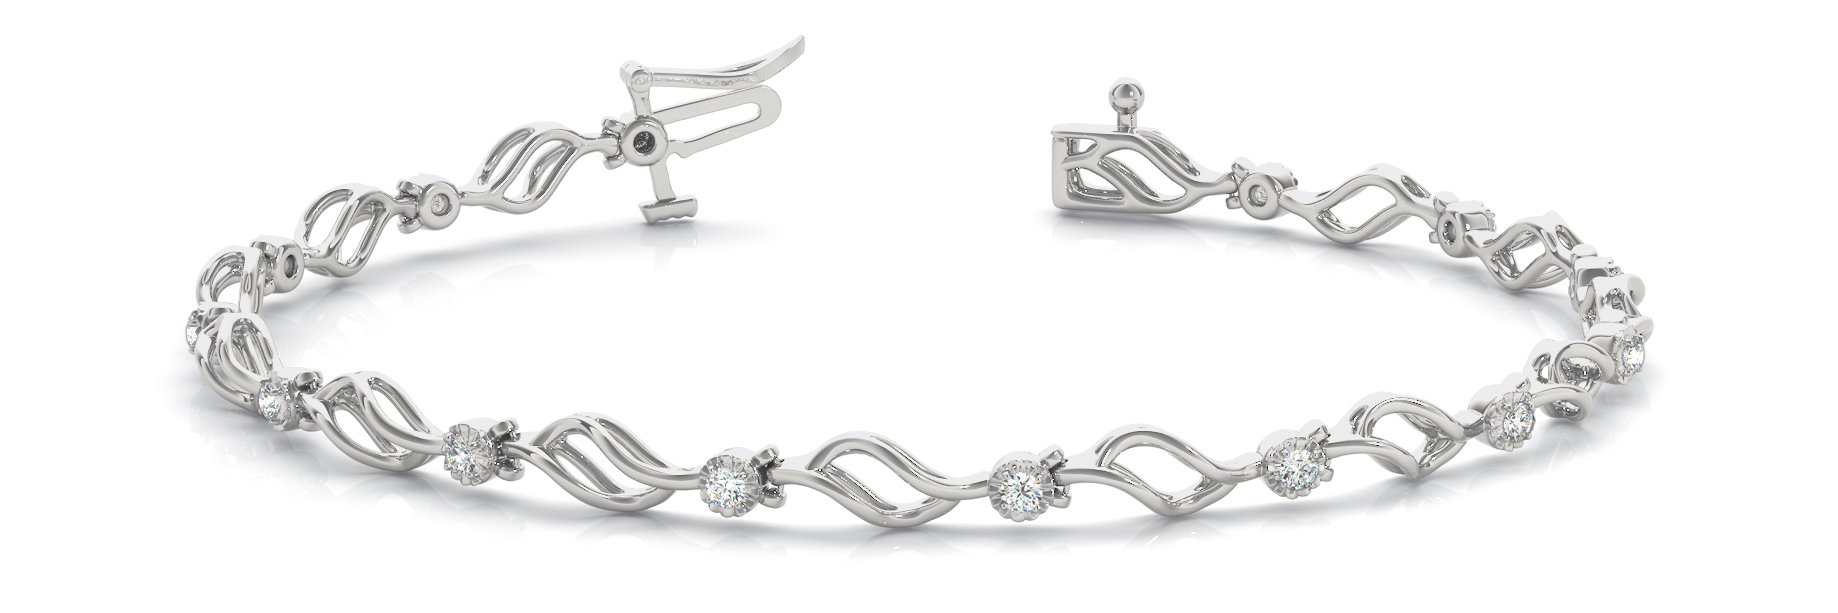 Flowing Leaves Diamond Bracelet 0.21 tcw